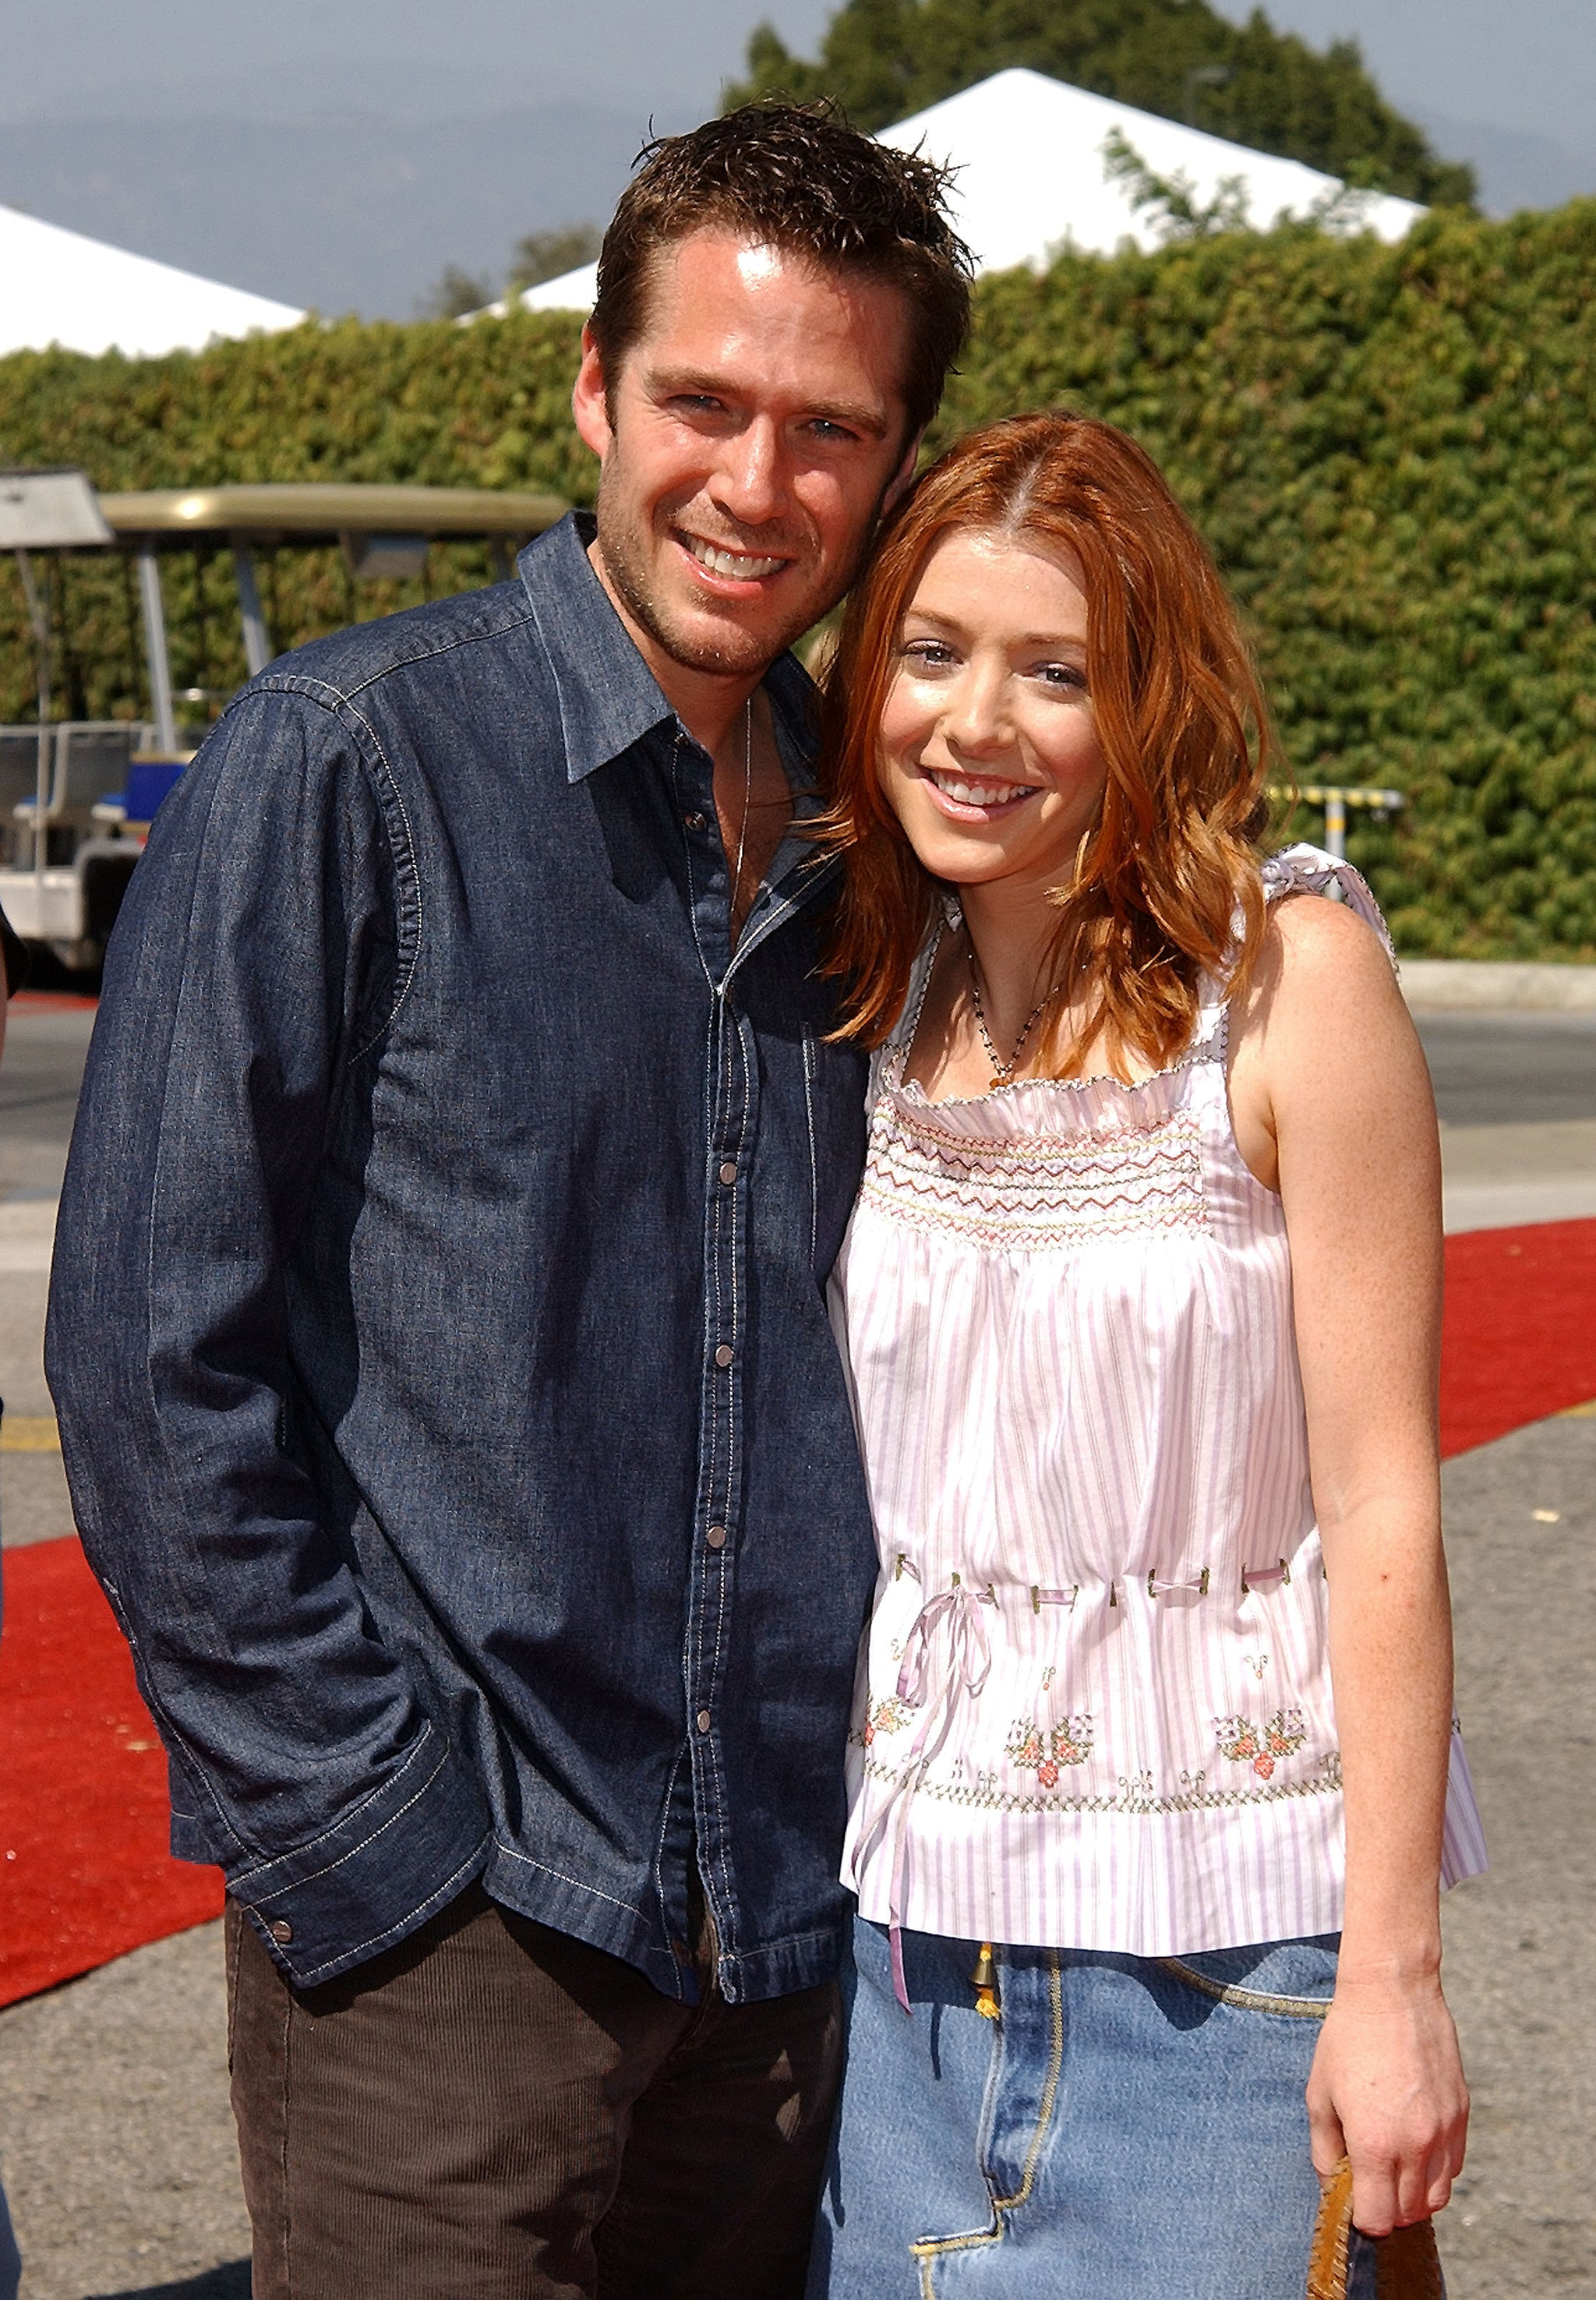 Alyson Hannigan Sex alexis denisof and alyson hannigan, 2002 | the cutest